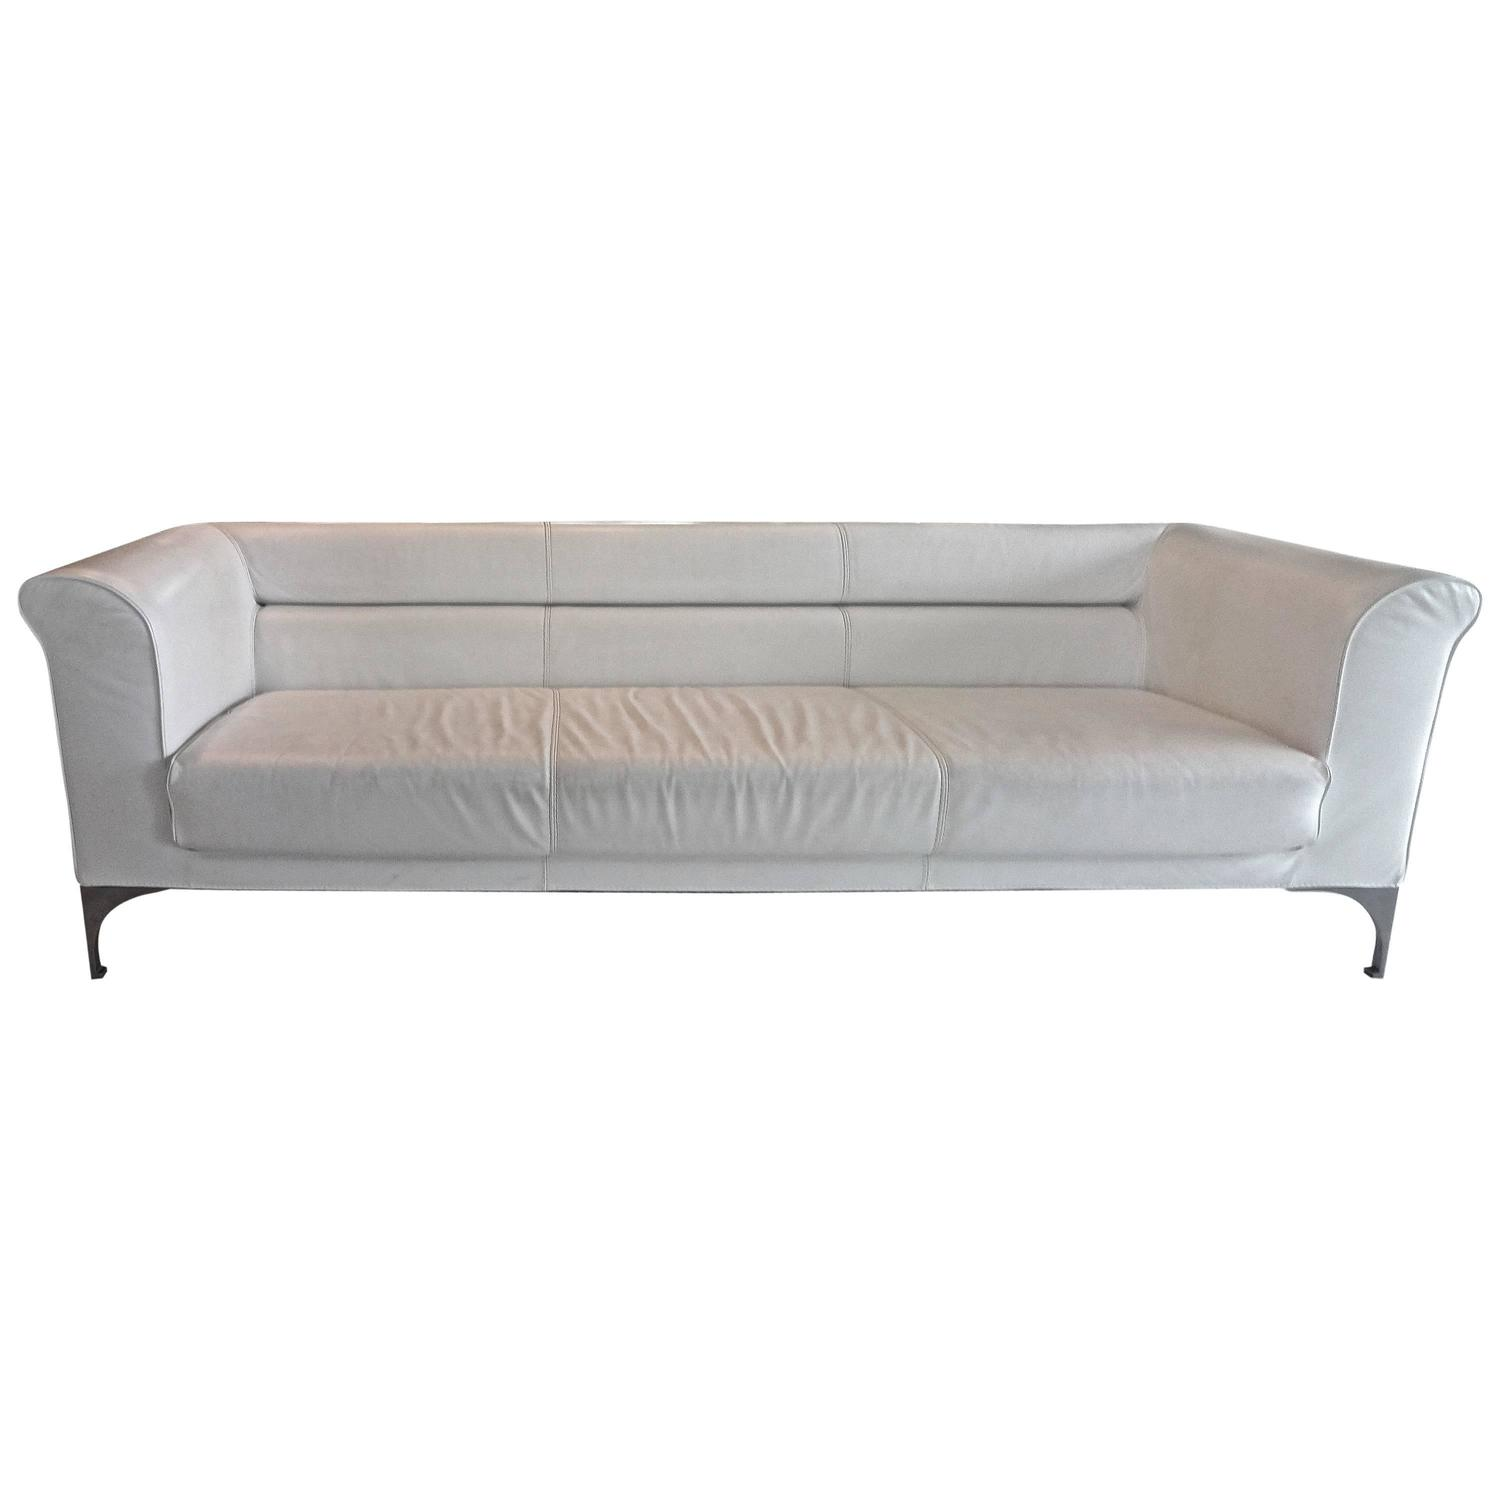 roche bobois white leather sofa for sale at 1stdibs. Black Bedroom Furniture Sets. Home Design Ideas